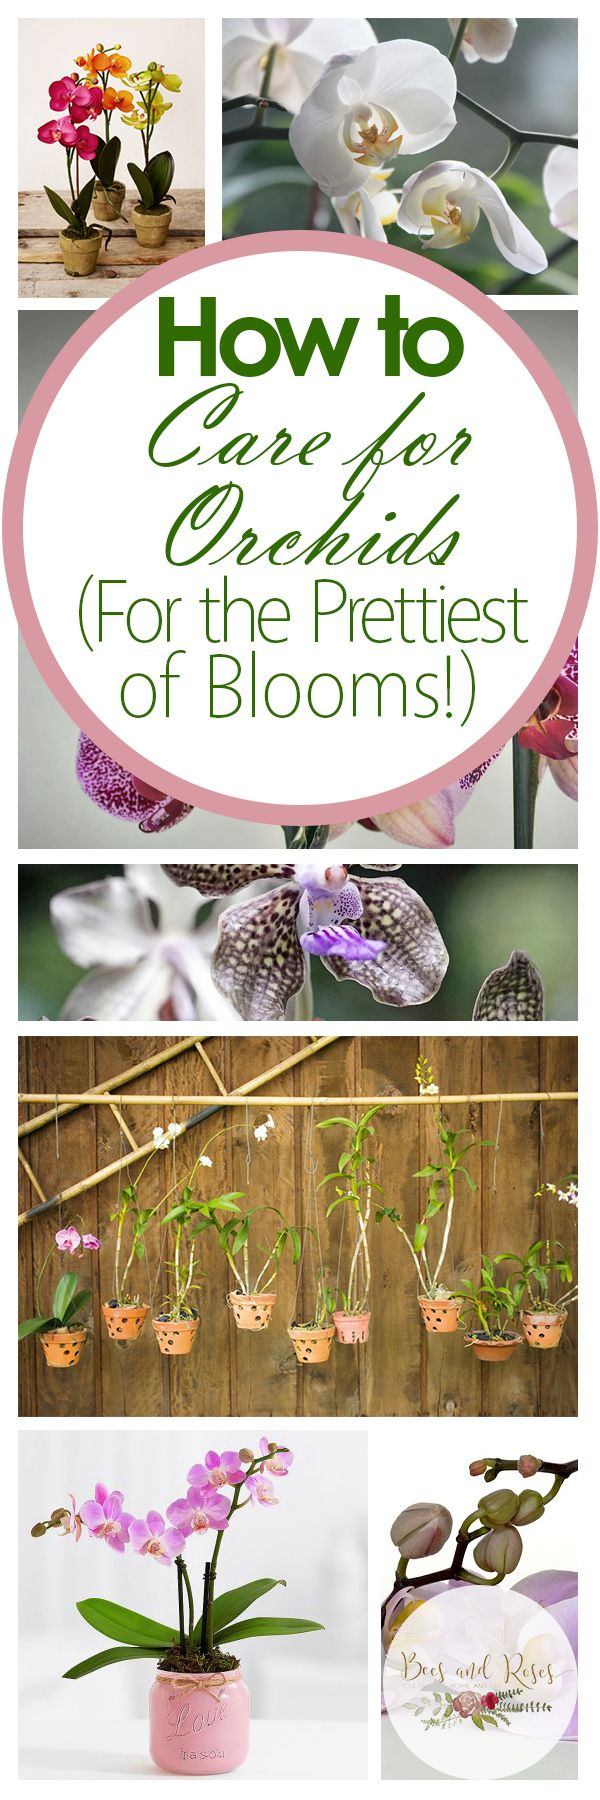 How to Care for Orchids (For the Prettiest of Blooms!)